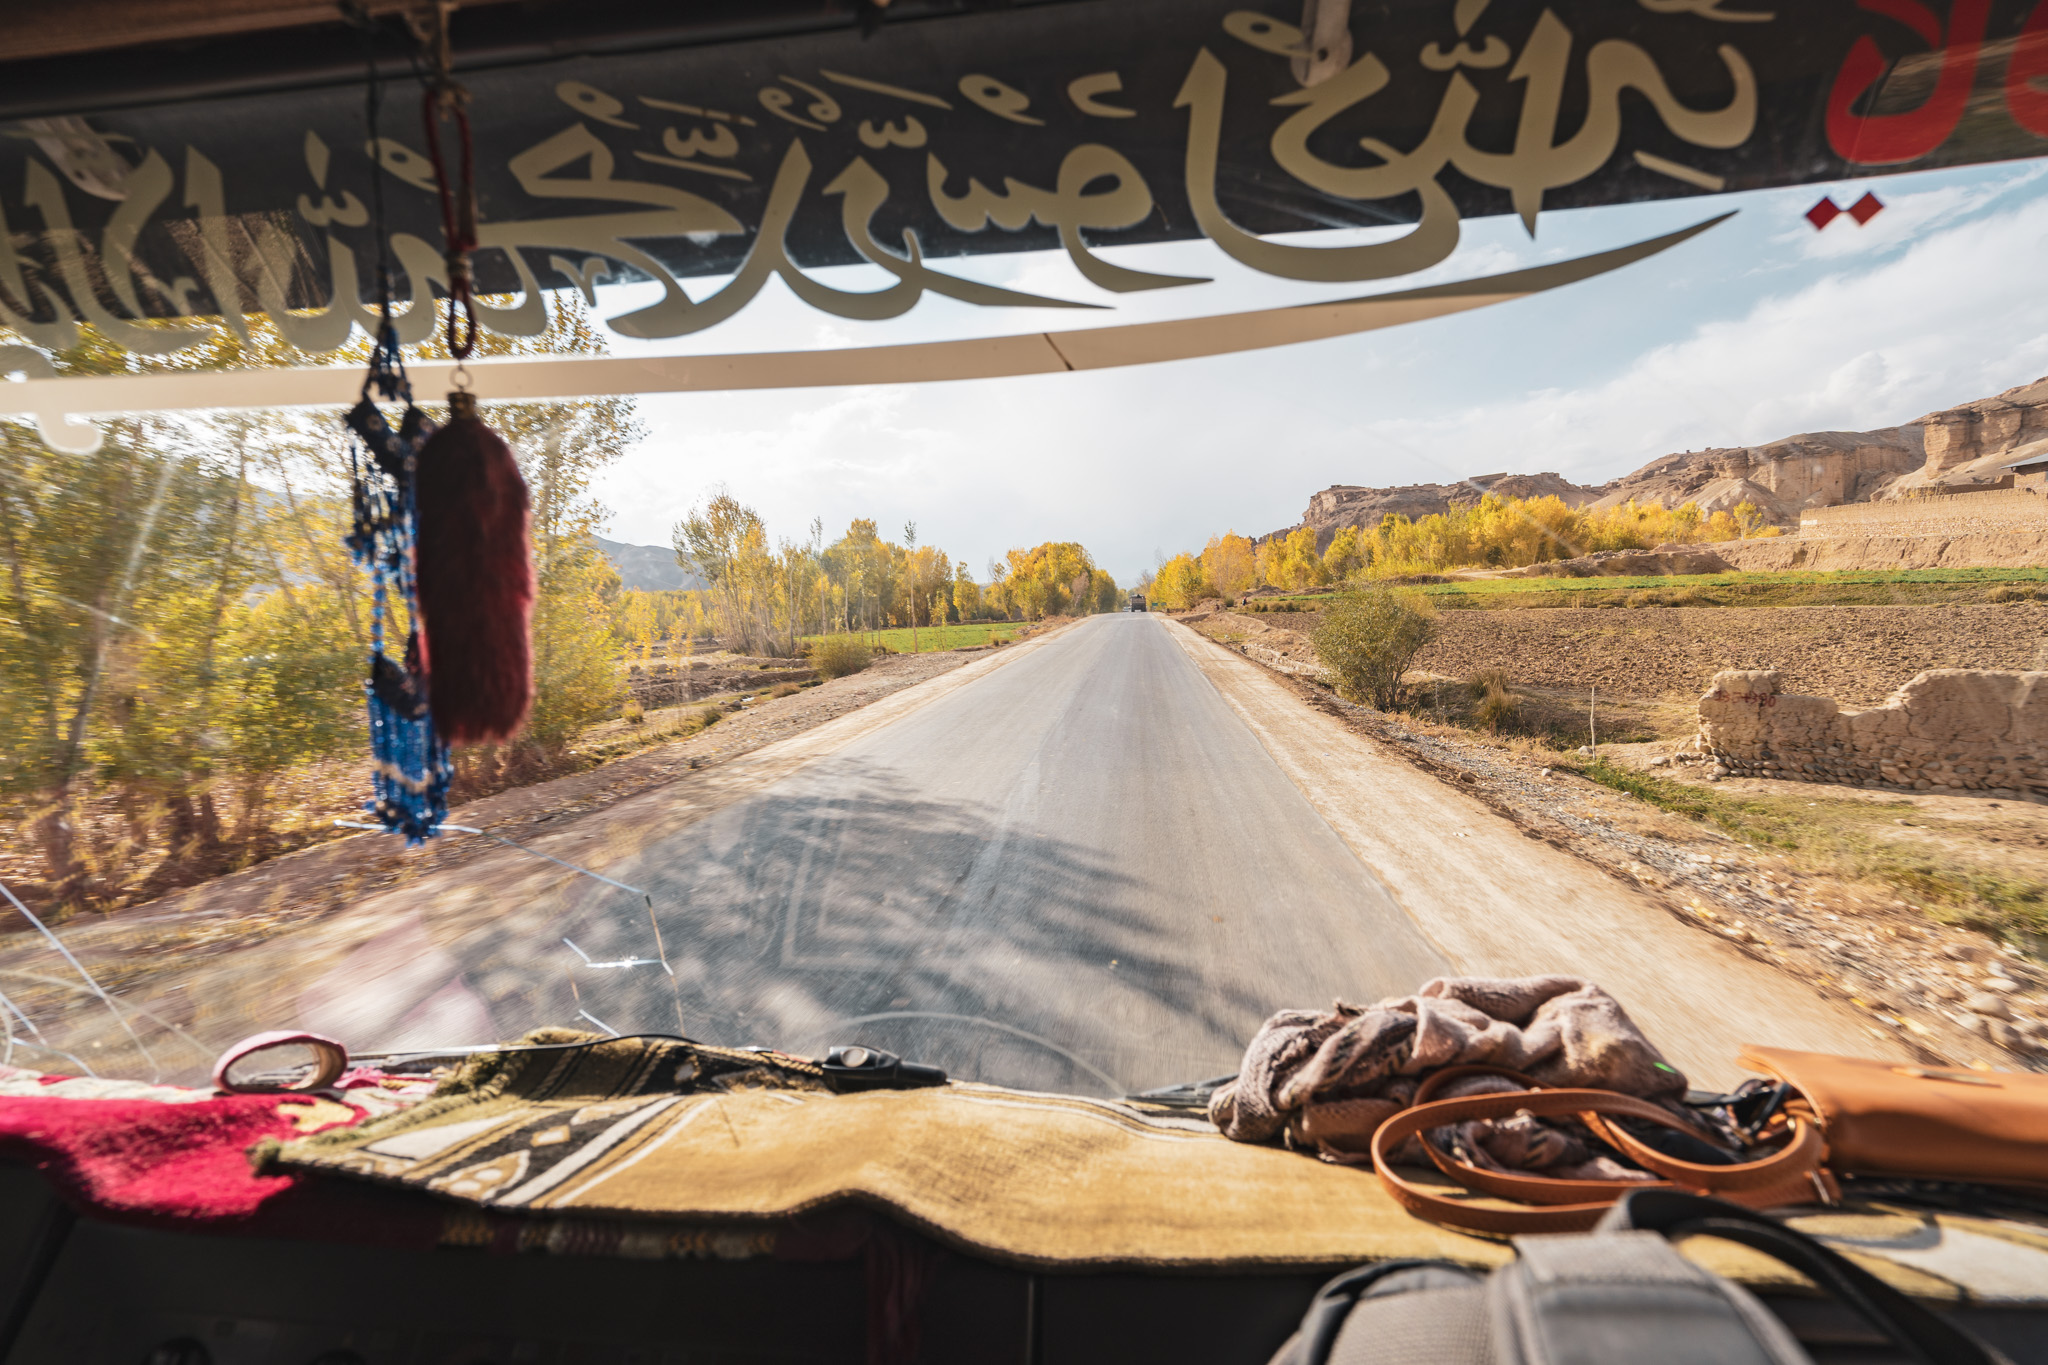 Hitchhiking with a trucker in Bamiyan Province